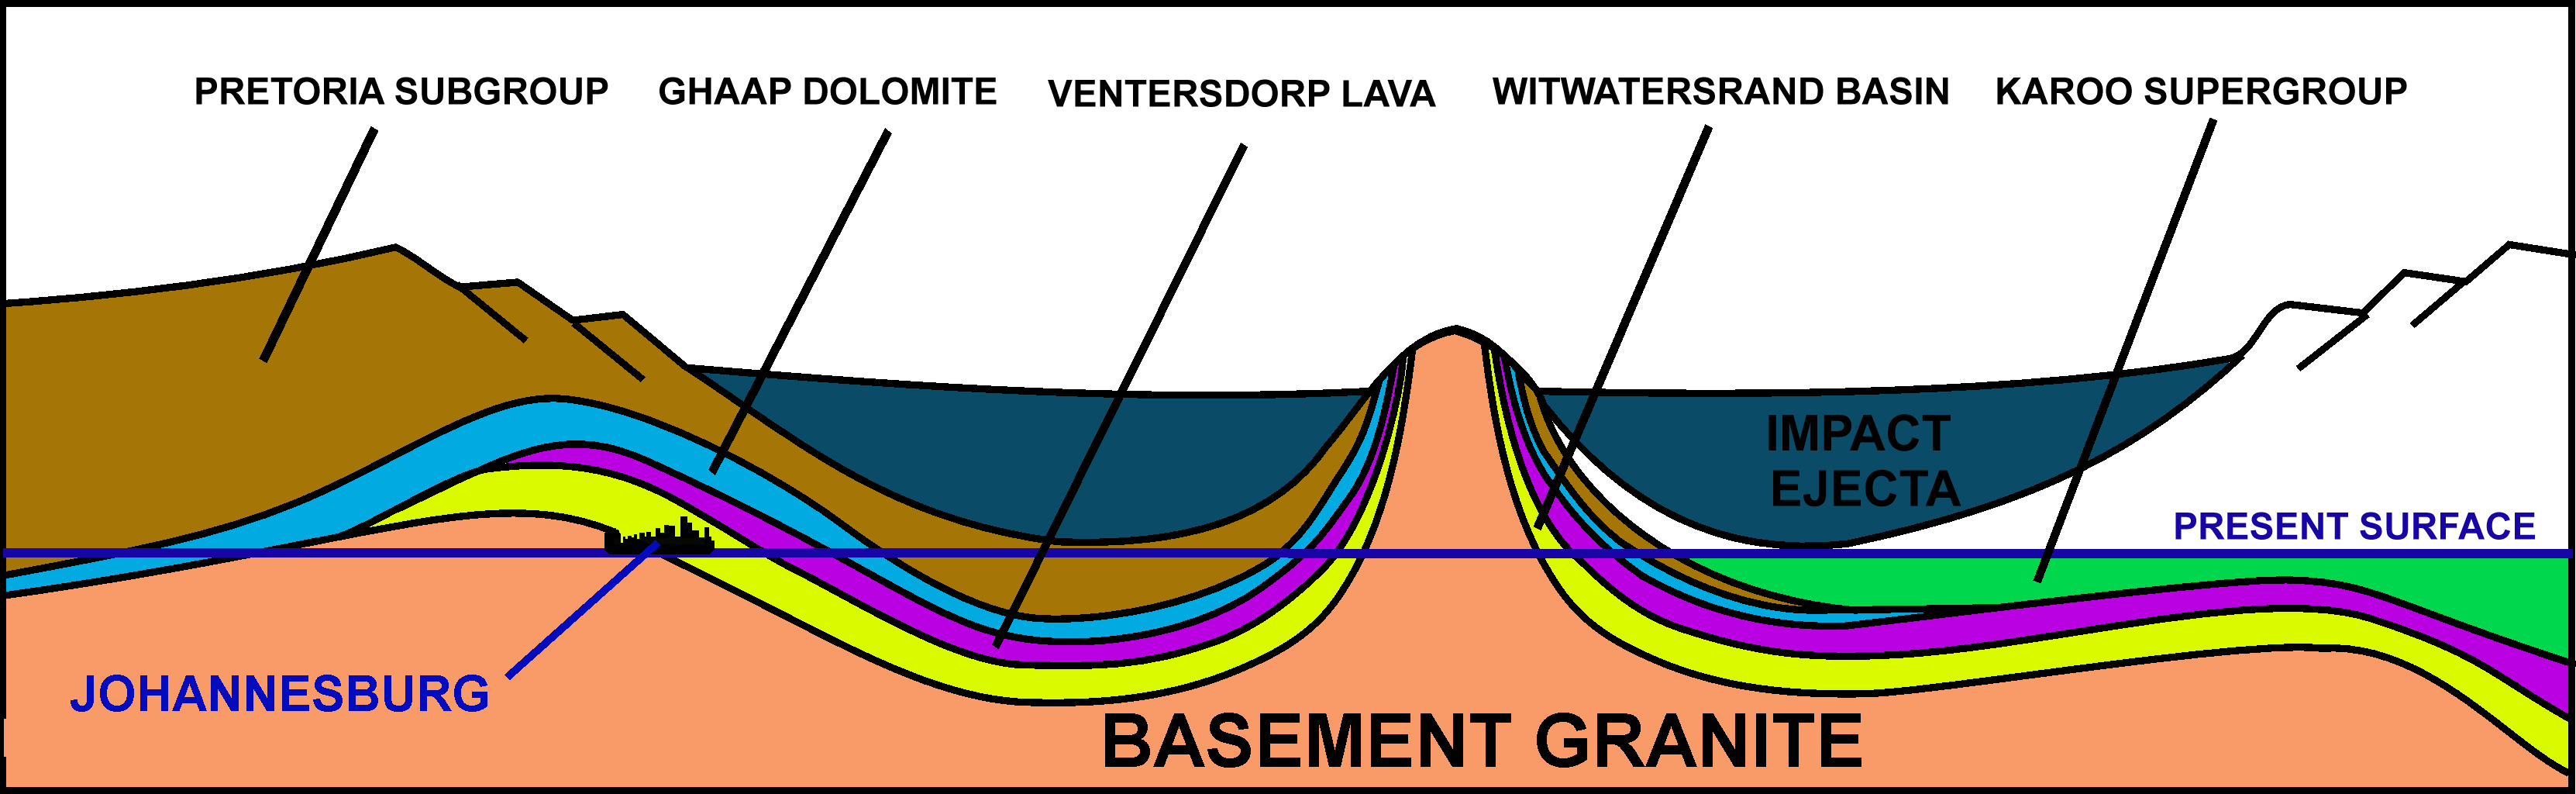 File:Vredefort crater cross section 2.png - Wikimedia Commons